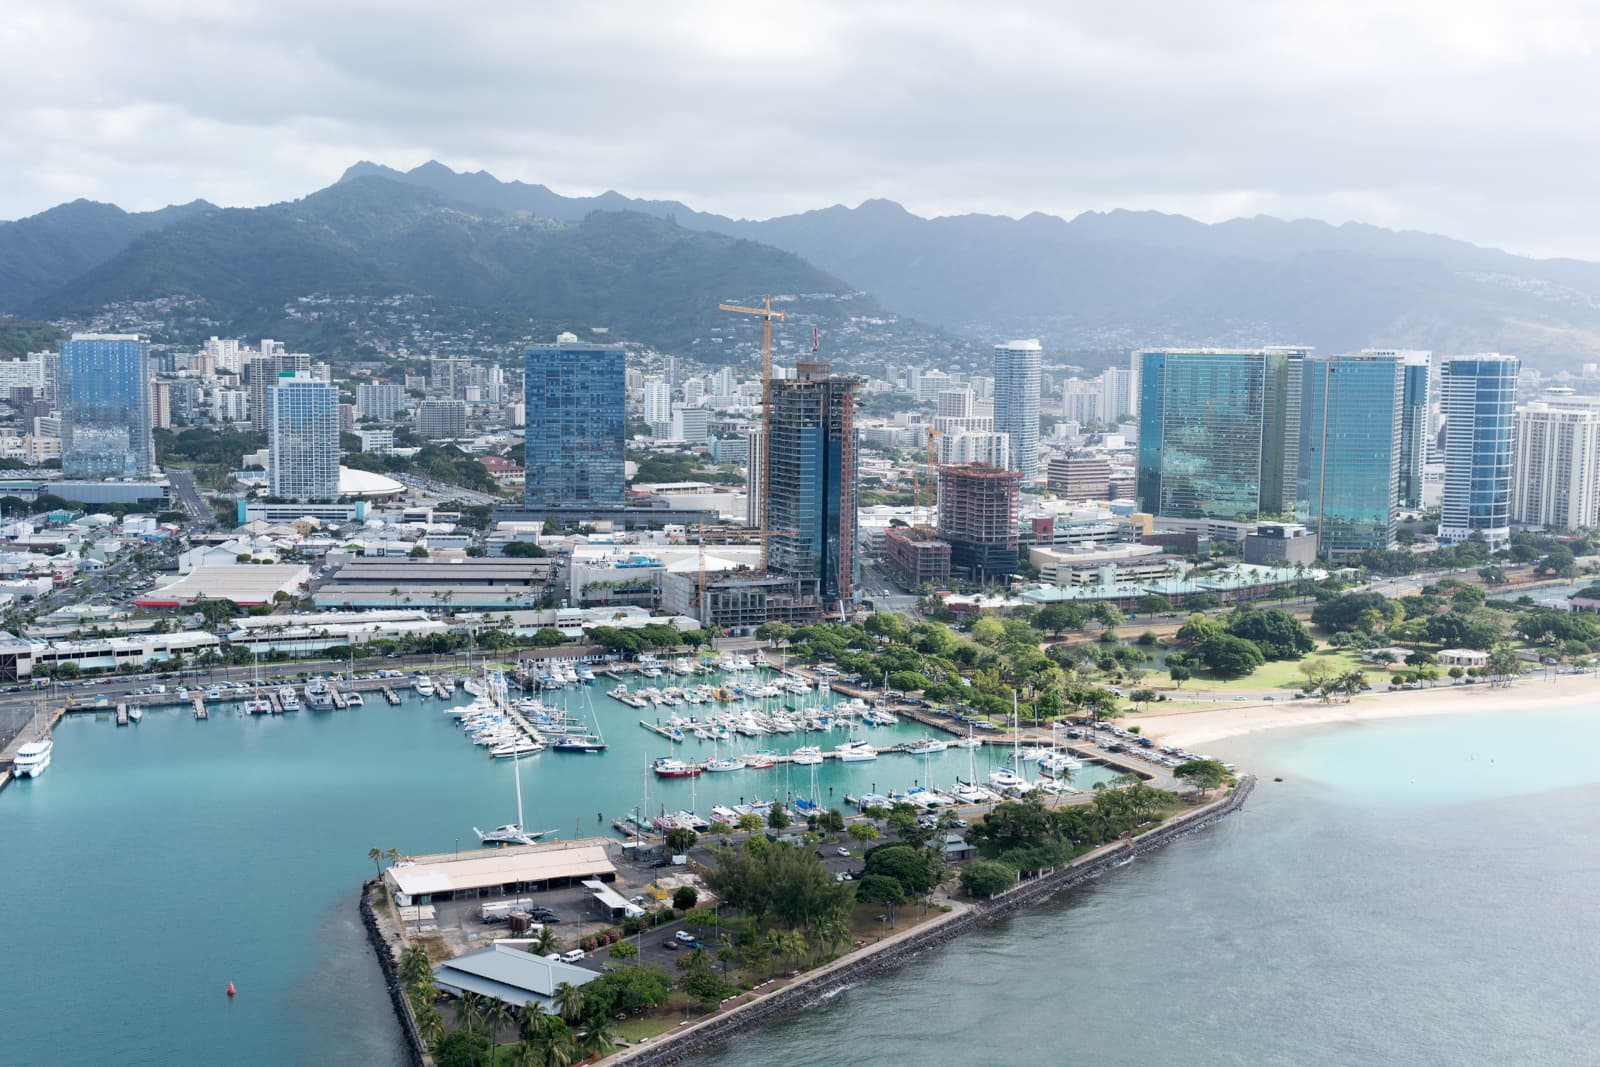 Aerial view of Honolulu with condo tower under construction